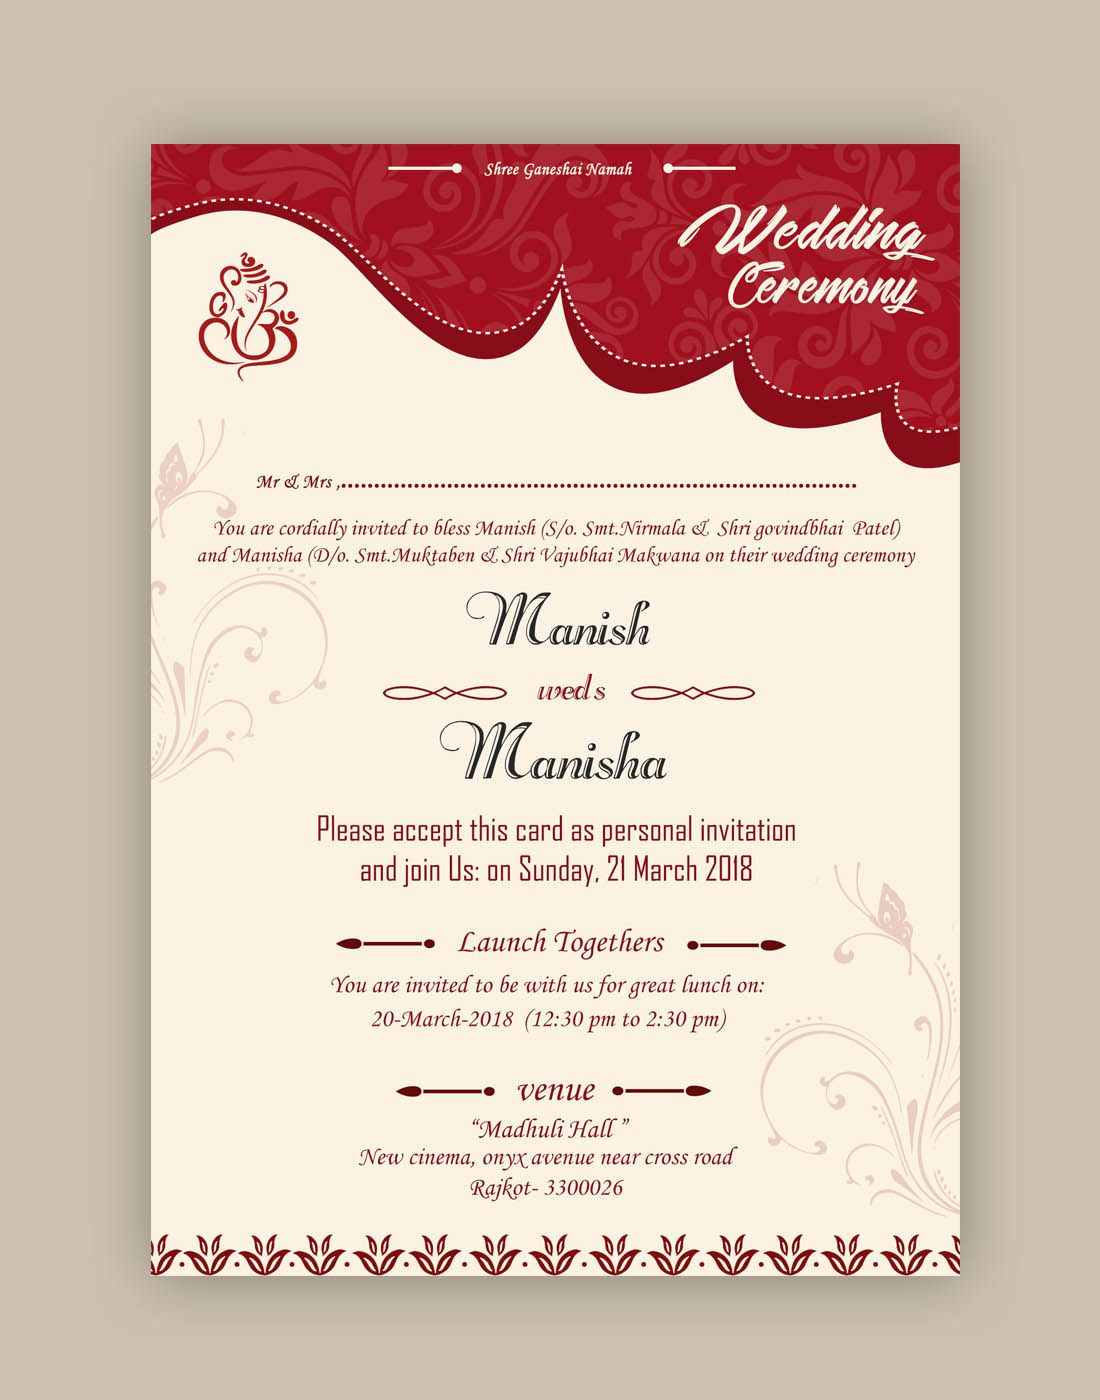 Free Wedding Card Psd Templates Wedding Card Design Indian Indian Wedding Invitation Cards Marriage Cards